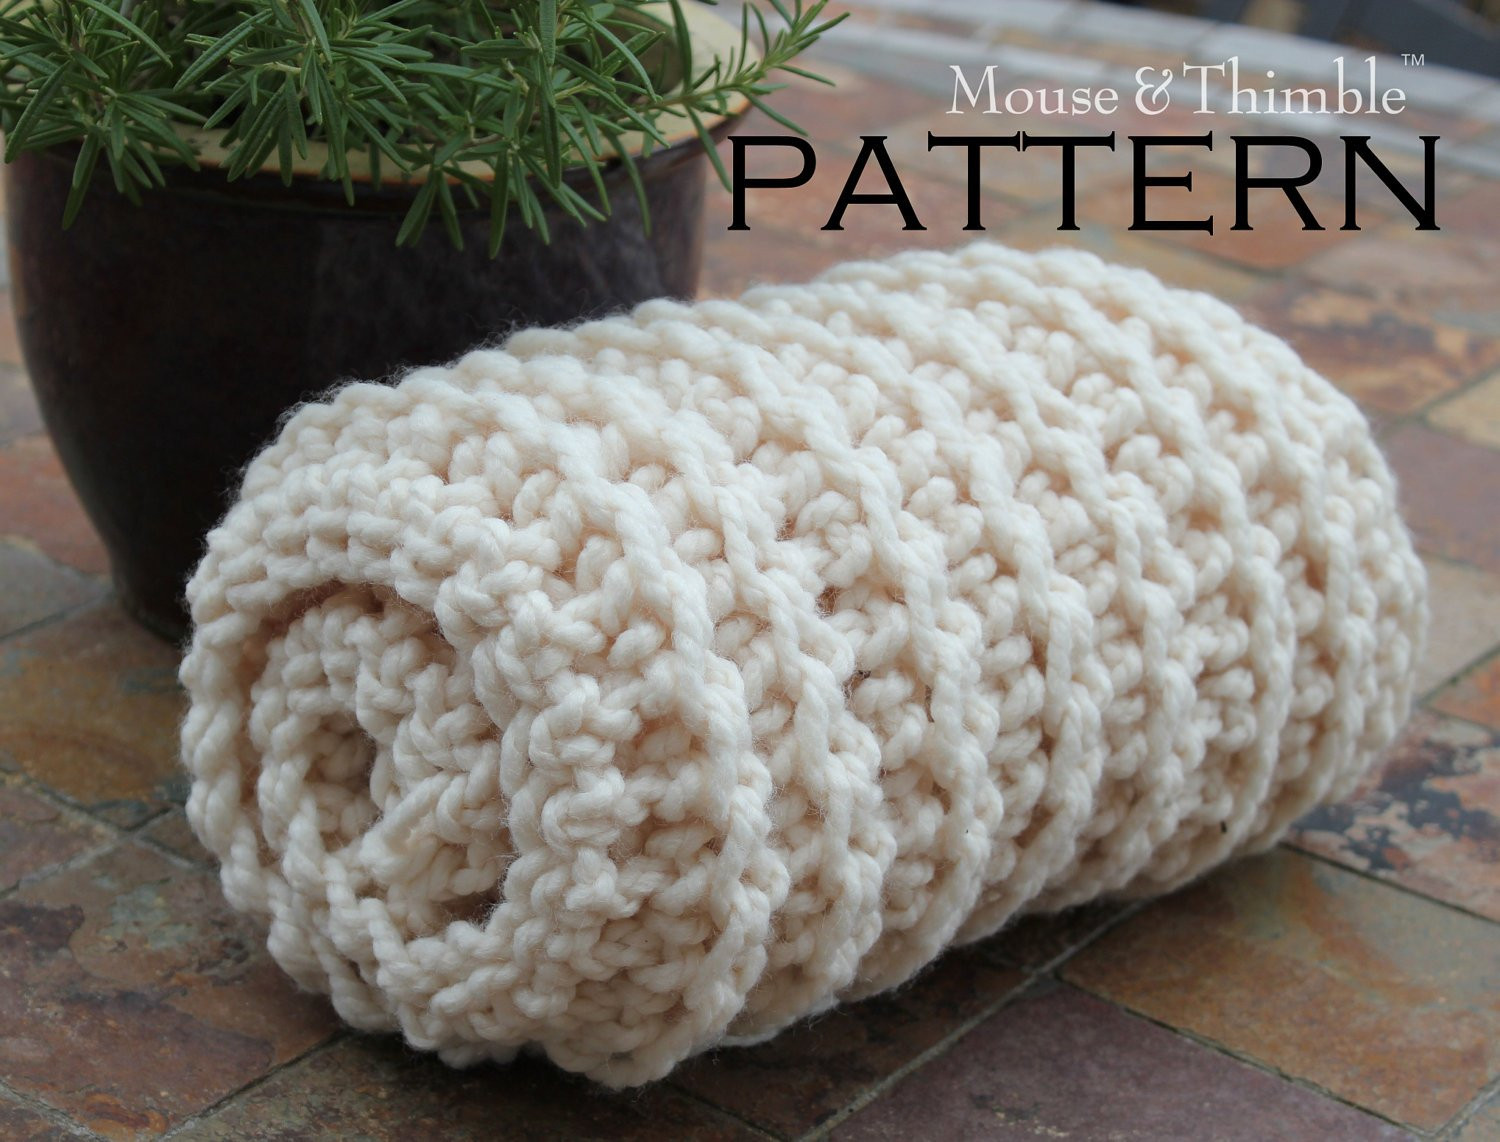 Awesome Chunky Fisherman Style Baby Blanket Crochet Pattern 25 Chunky Crochet Blanket Pattern Of Superb 44 Pics Chunky Crochet Blanket Pattern